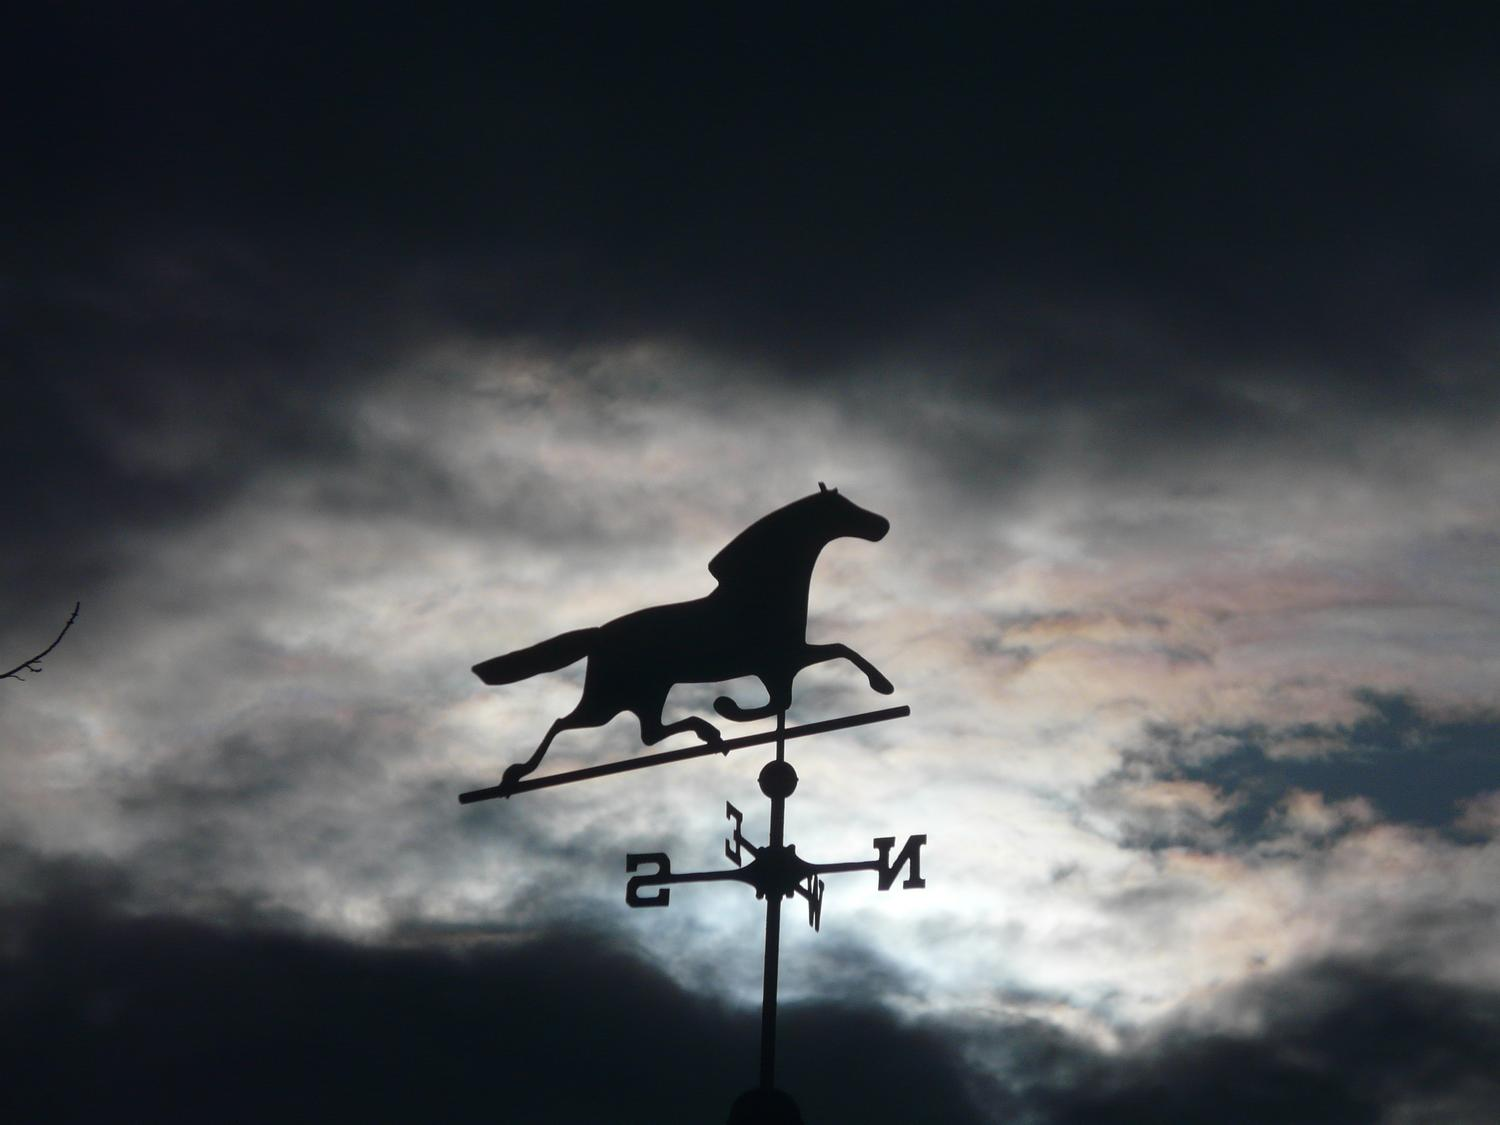 - Horse over my head, against the clouds and sun - - art  - photography - by Tony Karp